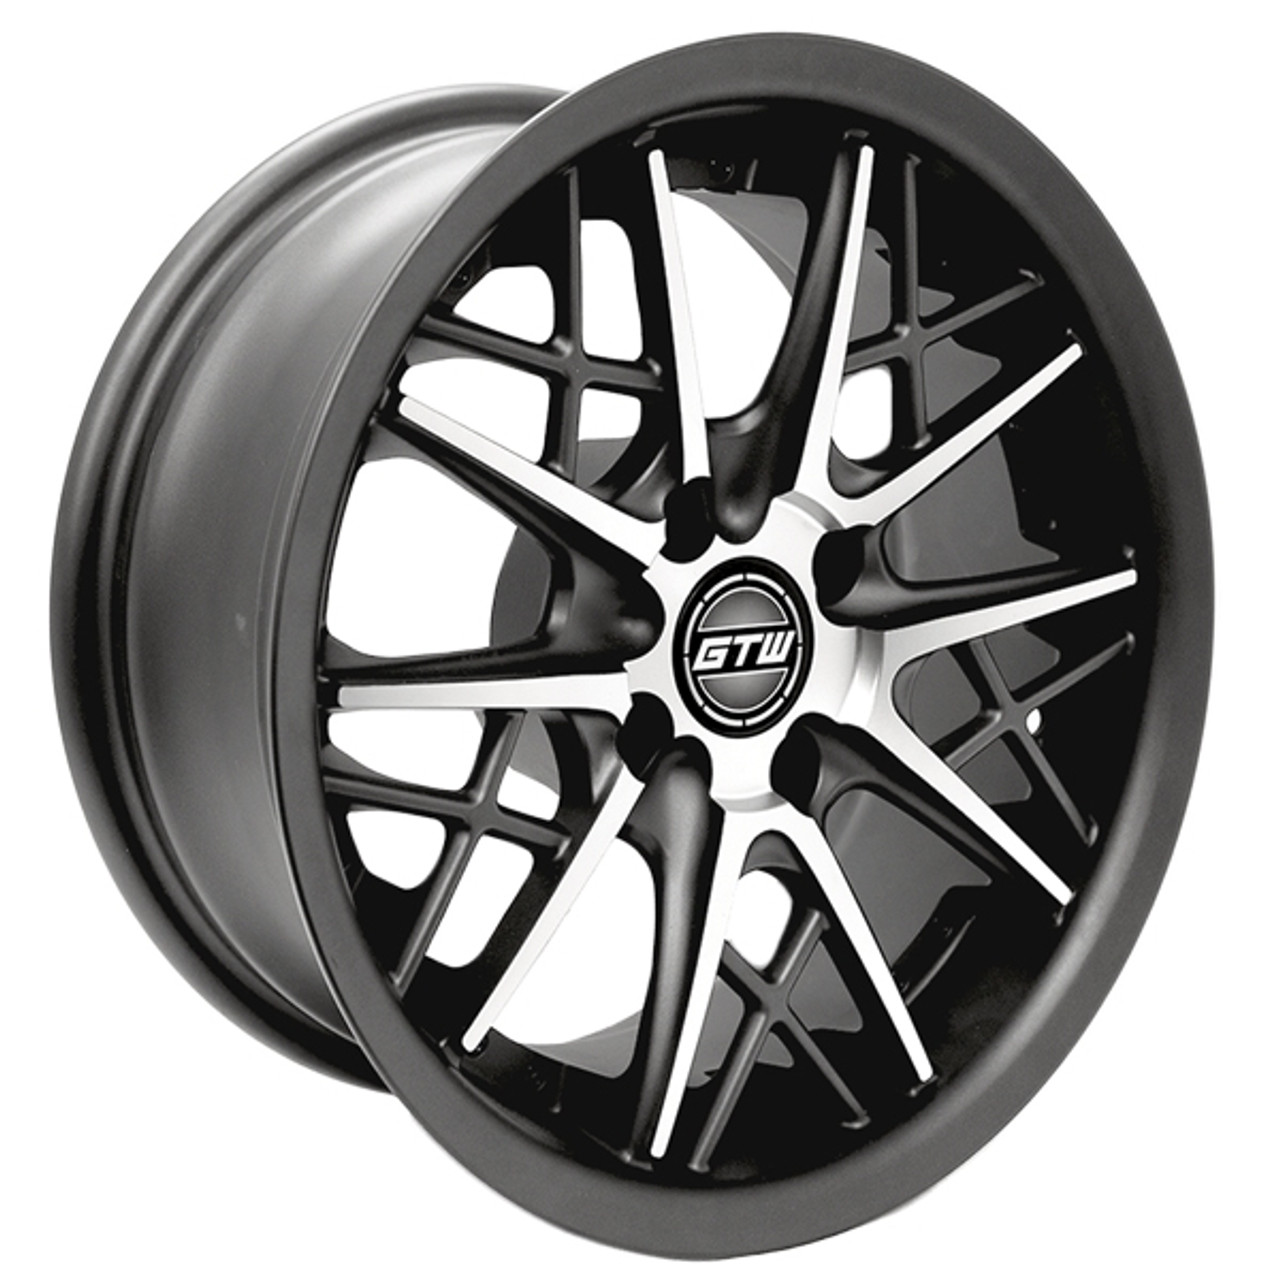 """GTW 14"""" AXIS Matte Gray/Machined Wheel"""